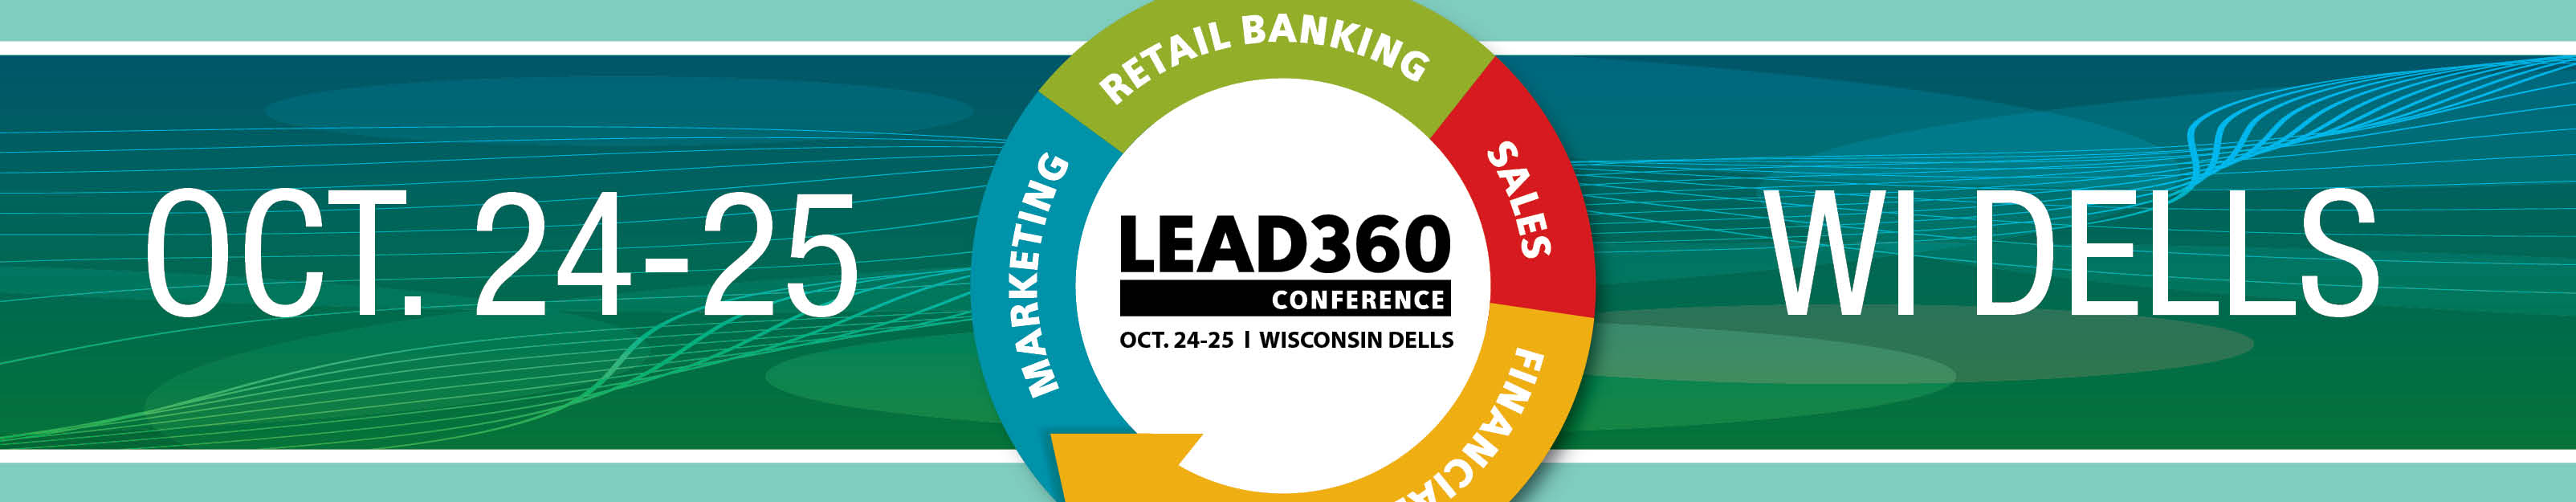 WBA LEAD360 Conference - Exhibitor & Sponsorship Opportunities